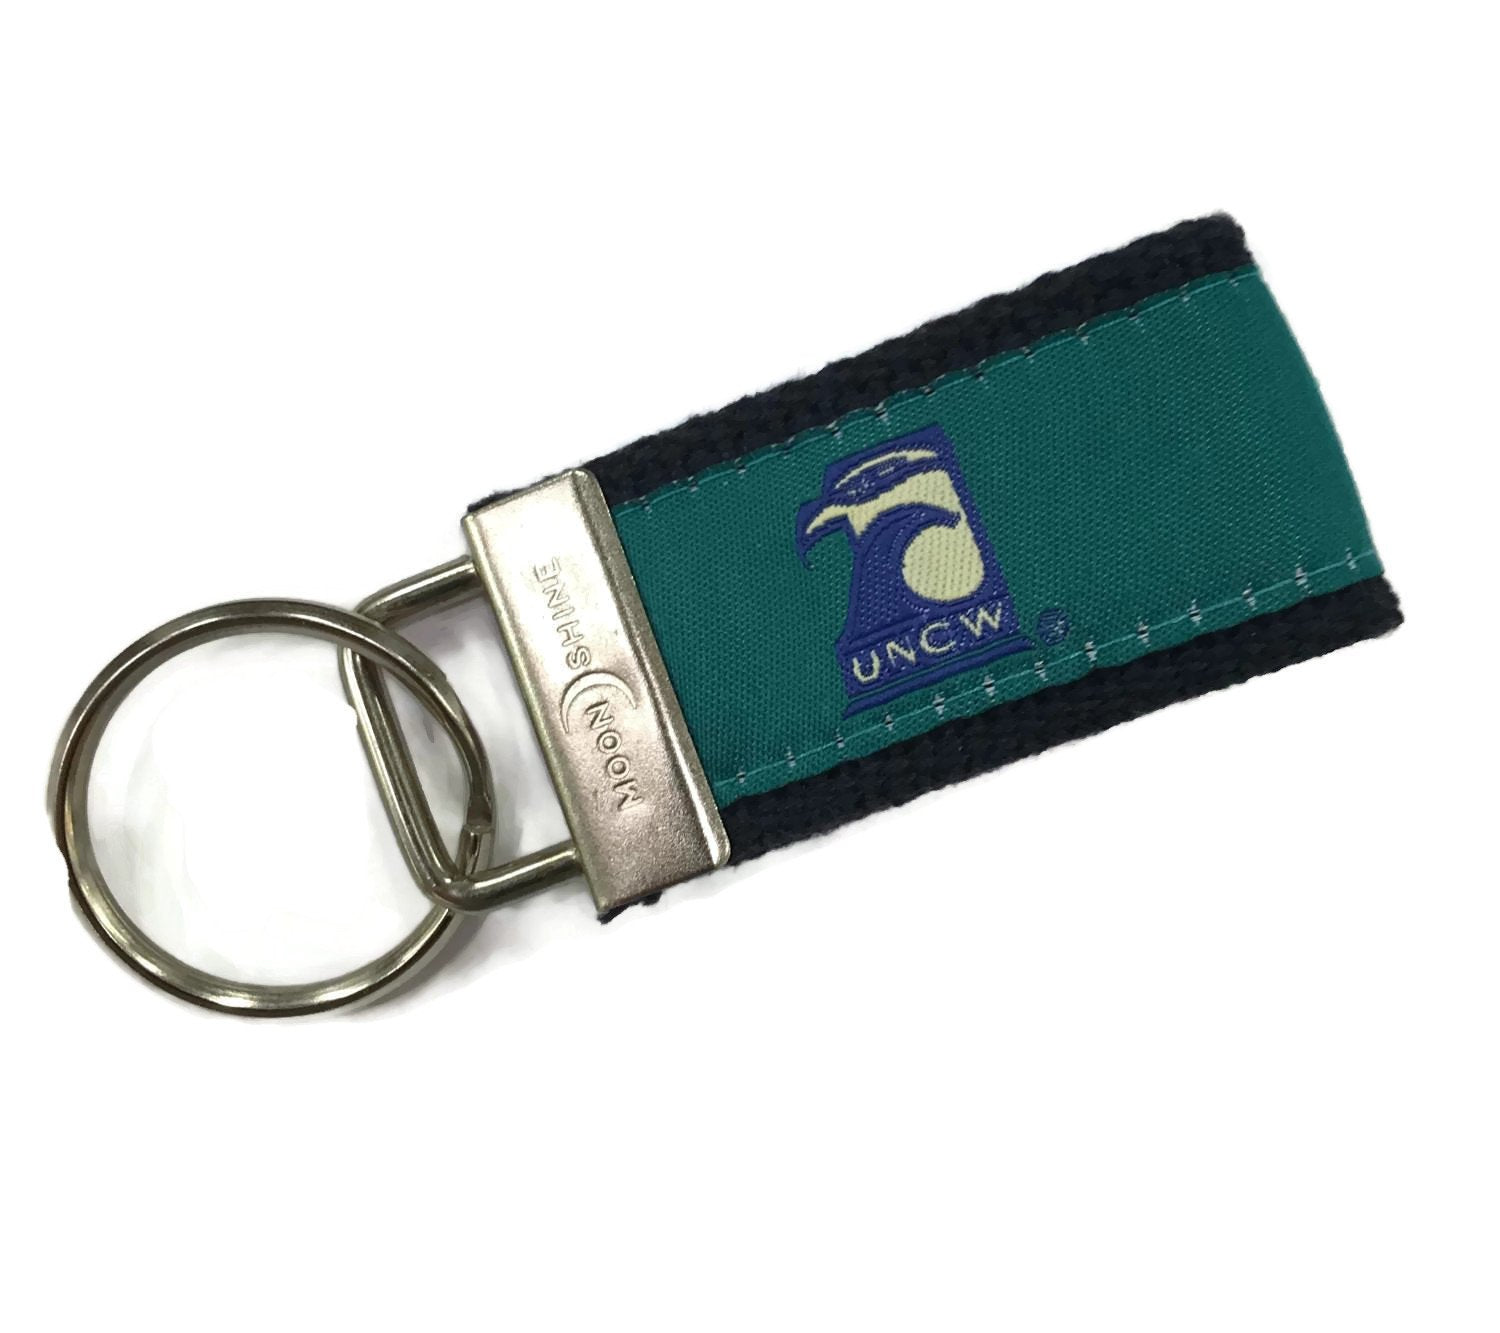 University of NC of Wilmington UNCW licensed web key chain